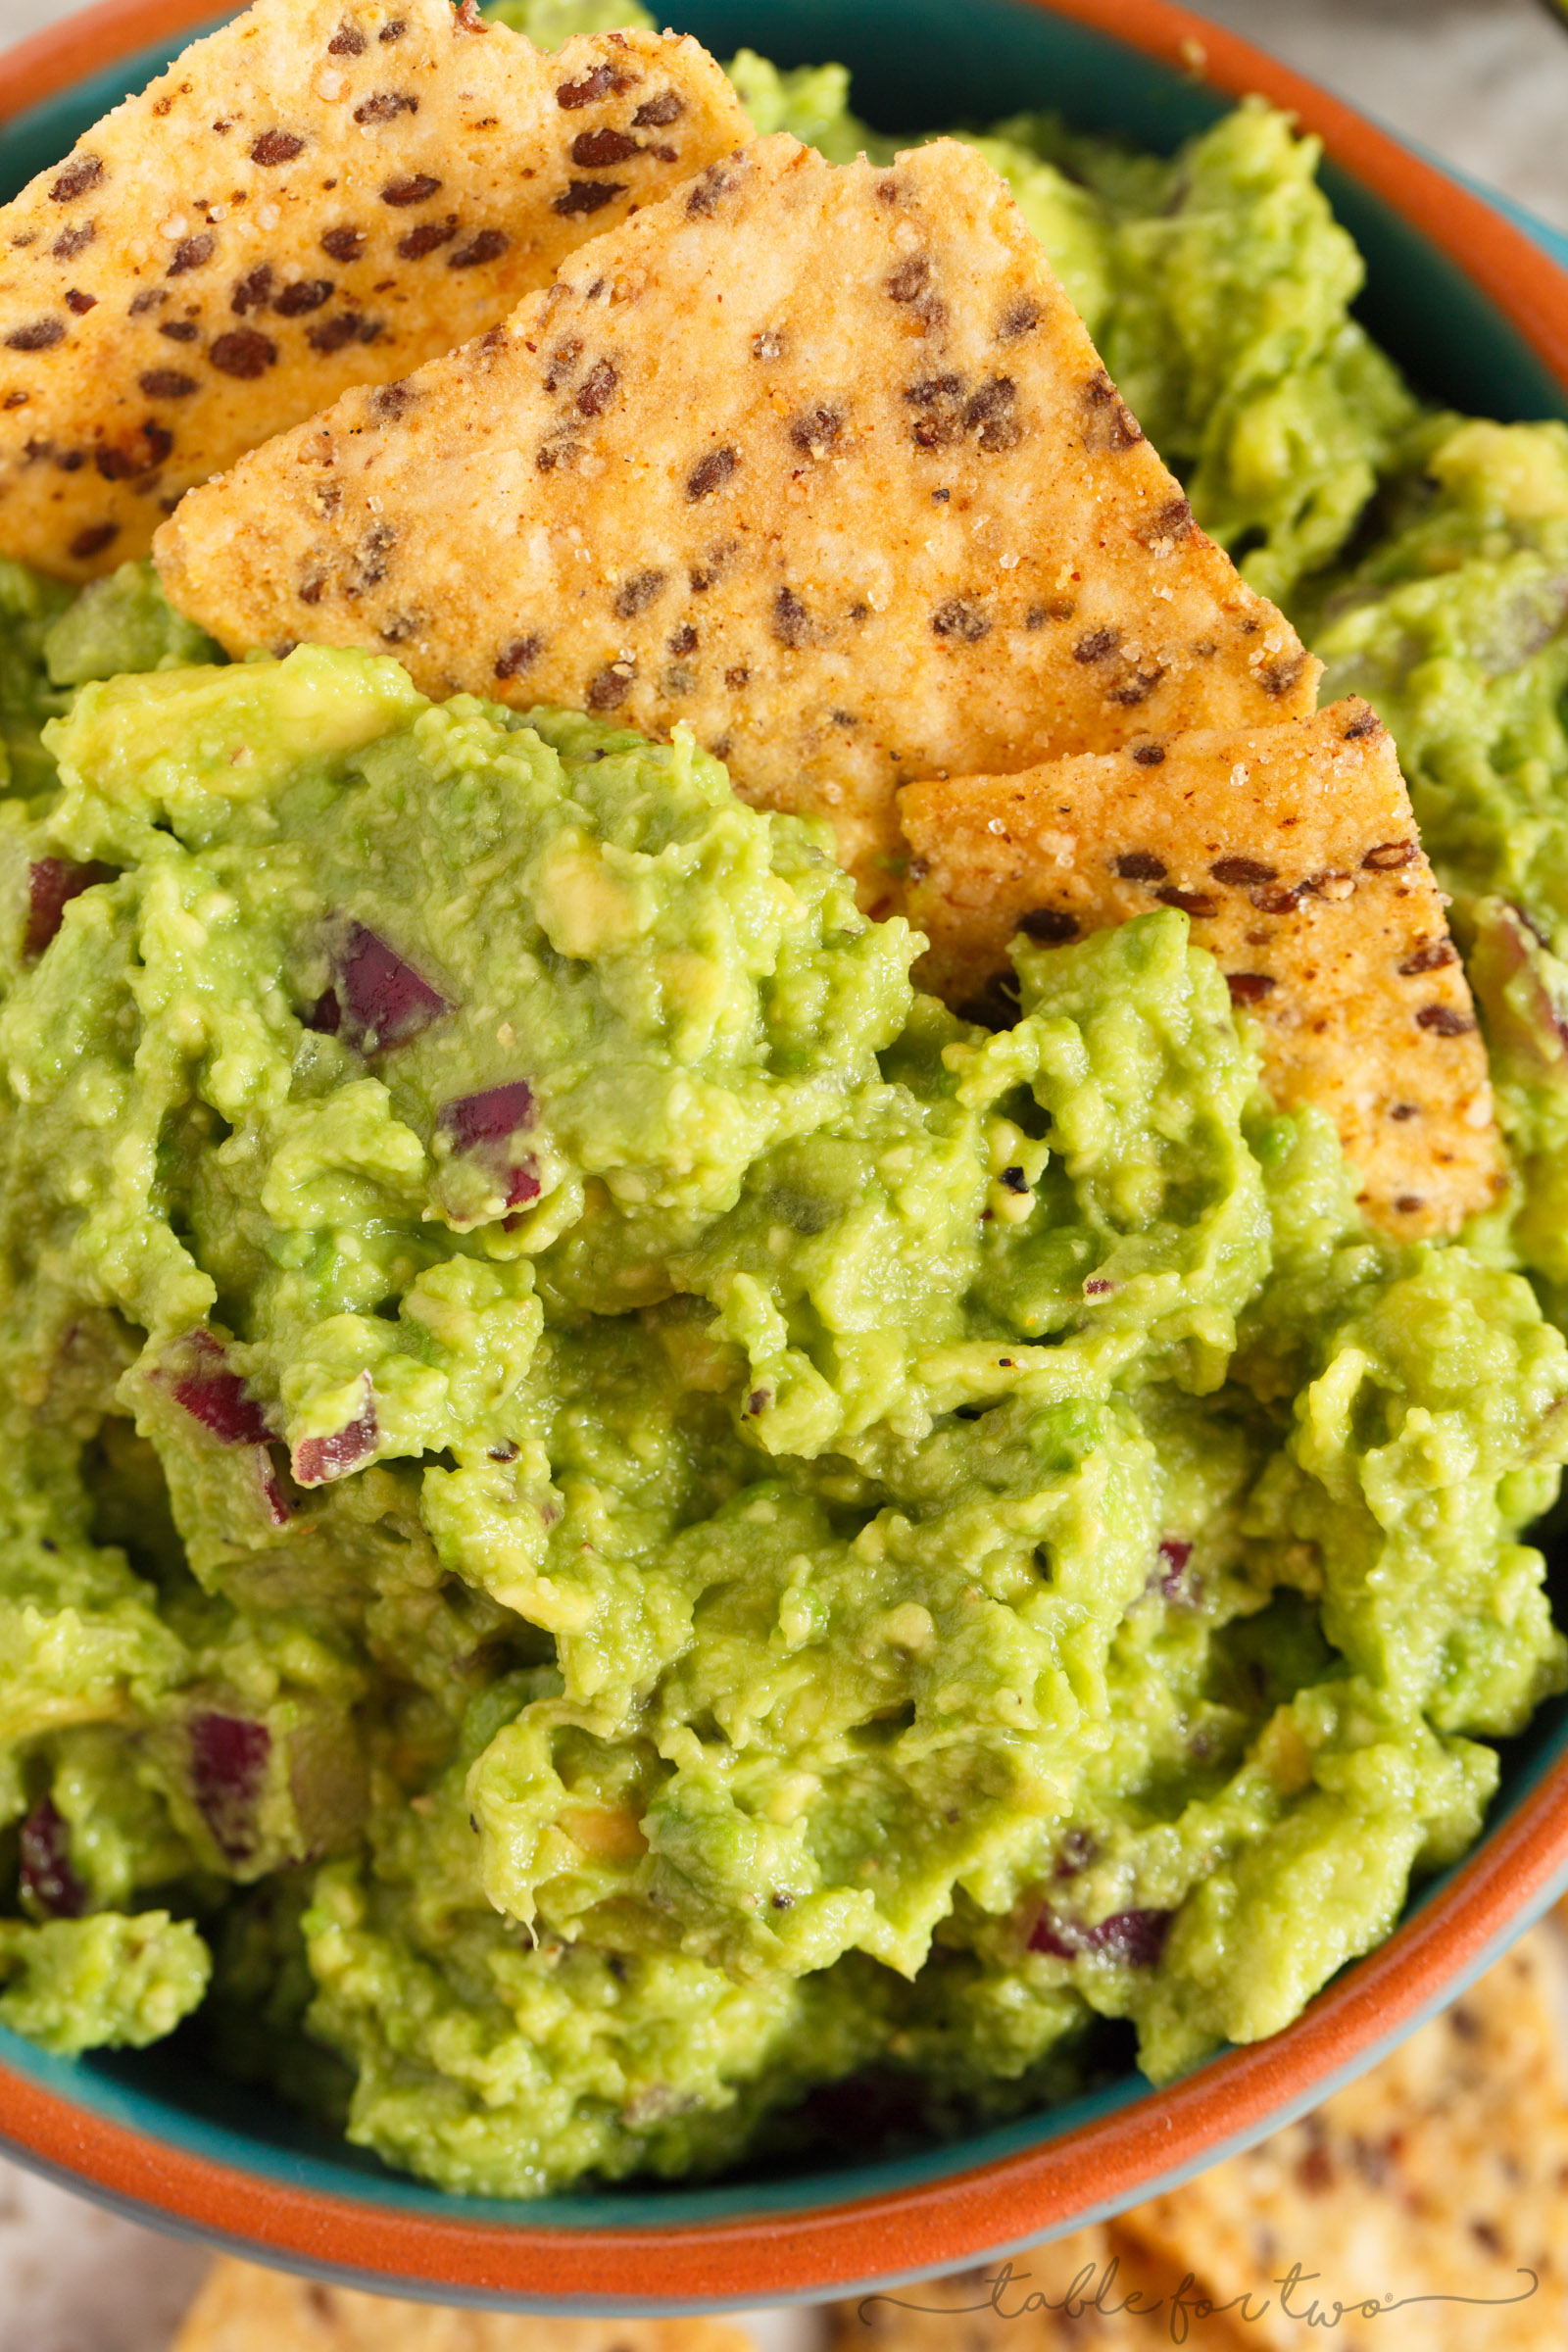 Everyone has to have a great guacamole recipe in their arsenal. Our favorite guacamole recipe is full of creaminess, tang, and bite! You will LOVE this version and always make batches of it to have on hand!